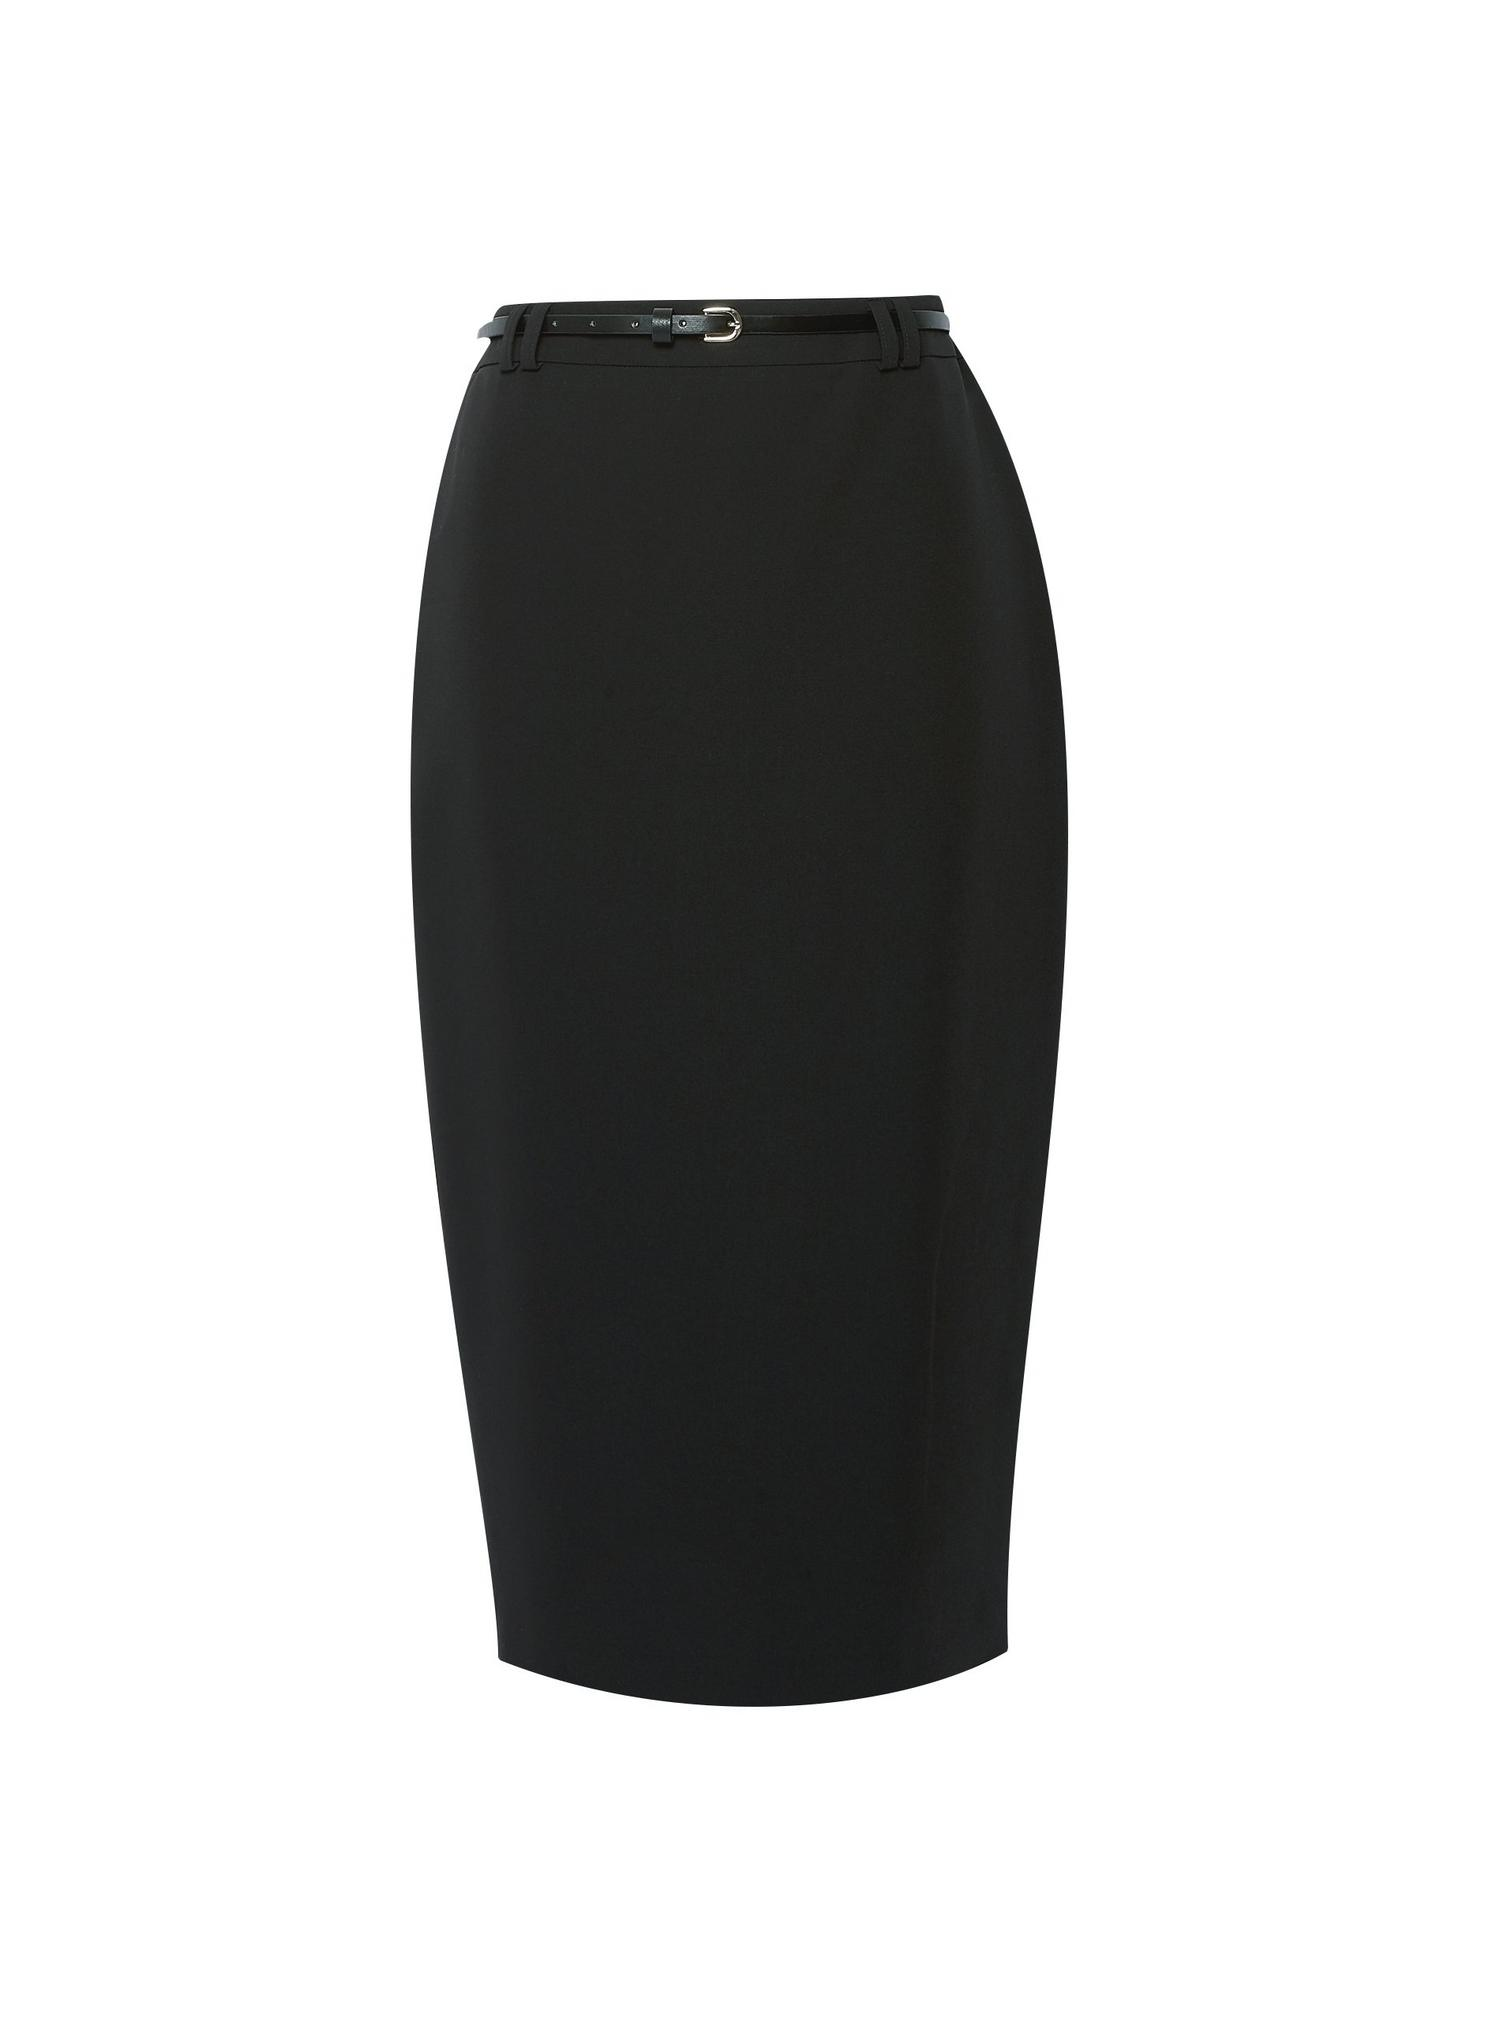 105 Black Tailored Pencil Skirt image number 2